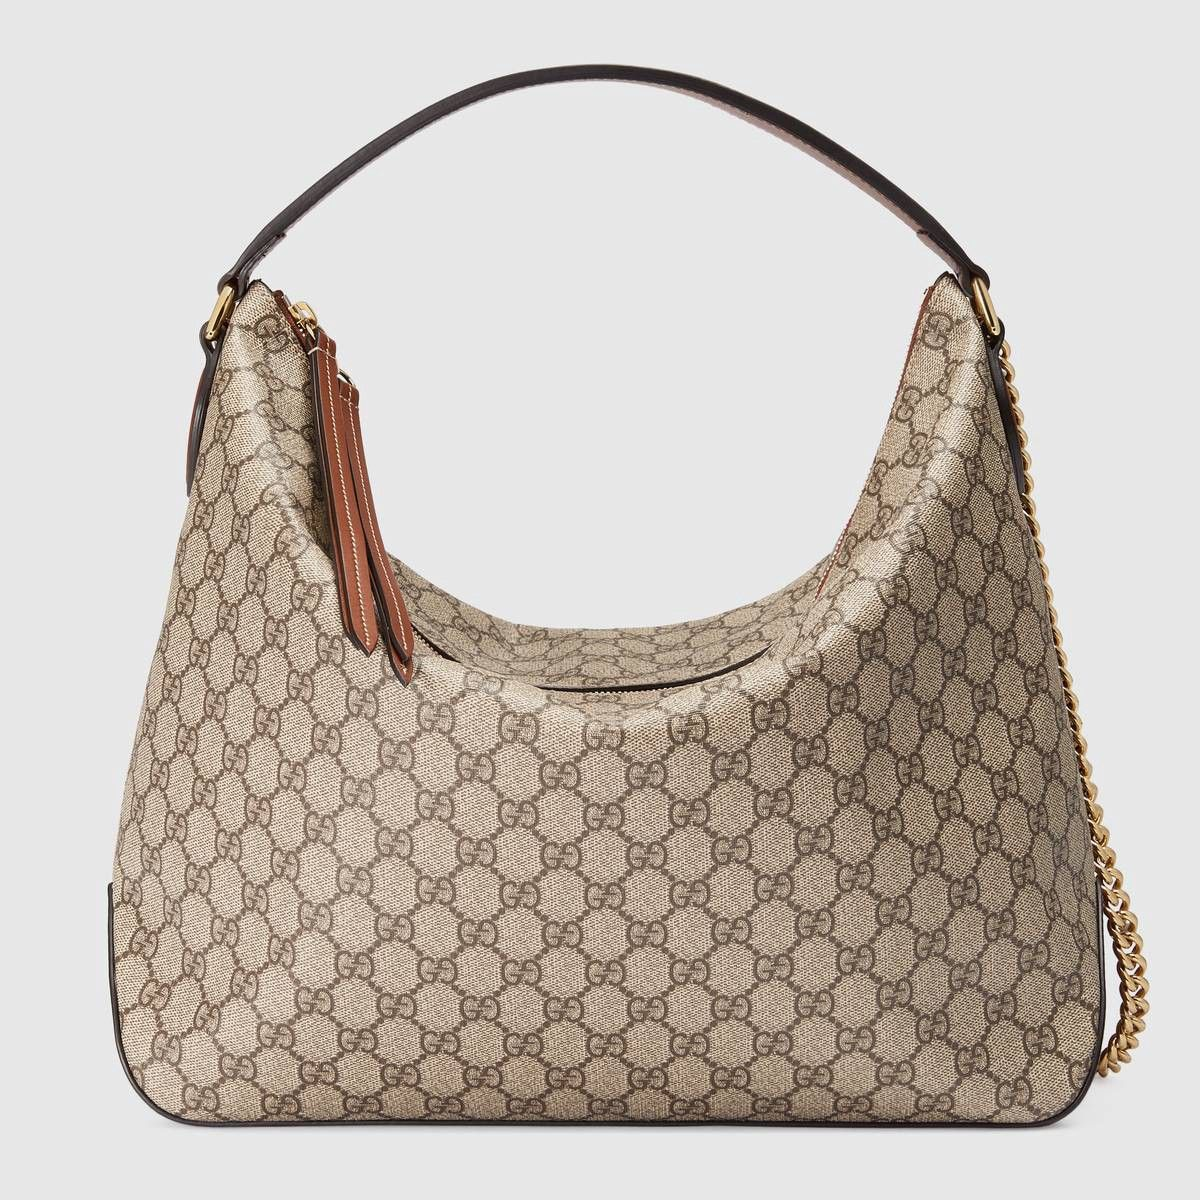 d5b9e1cb62be GUCCI GG Supreme large hobo - GG supreme canvas. #gucci #bags #canvas # lining #shoulder bags #suede #hand bags #hobo #